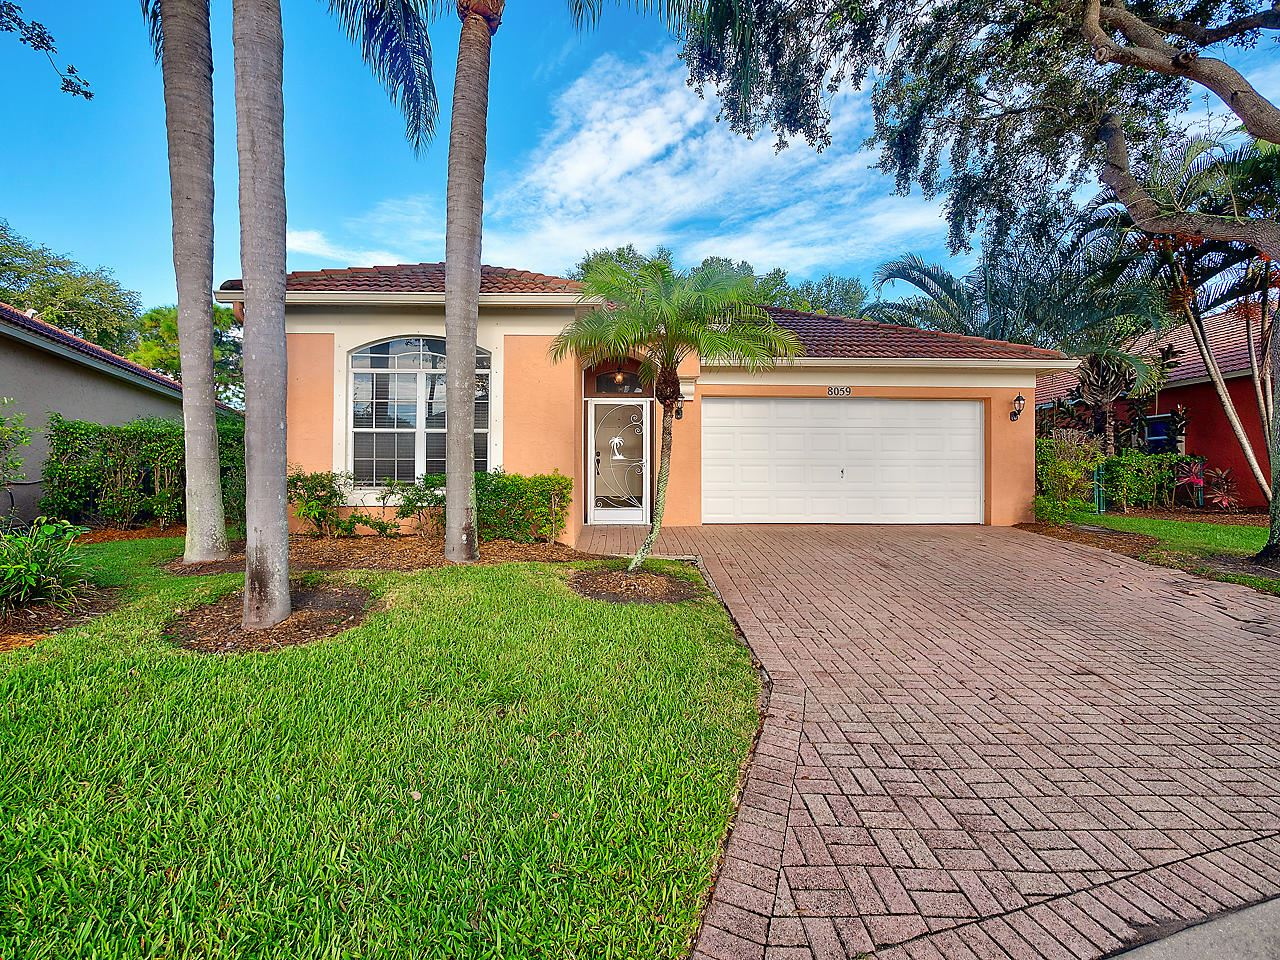 8059 Via Hacienda, Riviera Beach, FL 33418 - #: RX-10653549